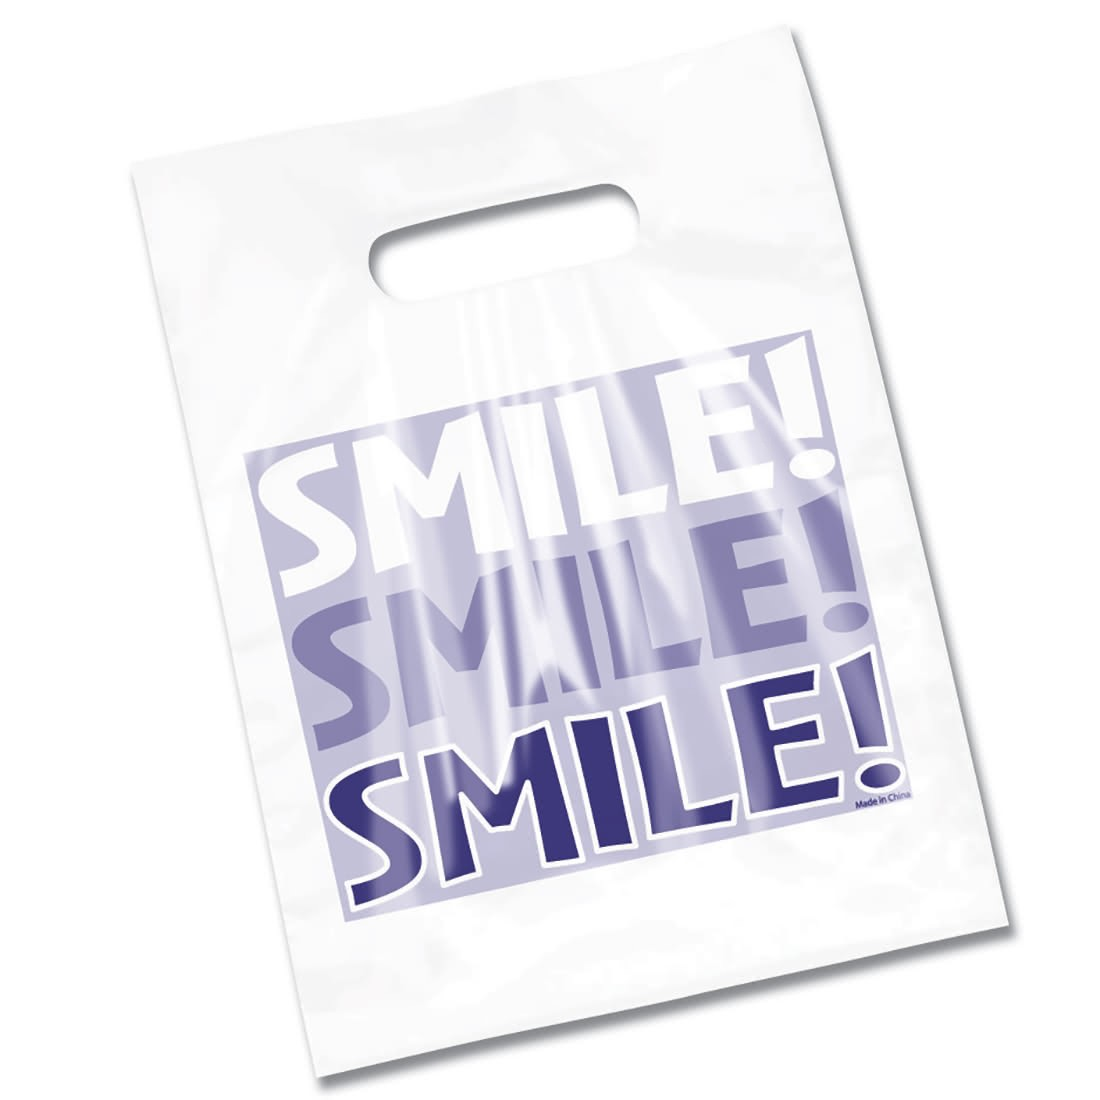 Clear Smile Smile Smile Bags                       [image]